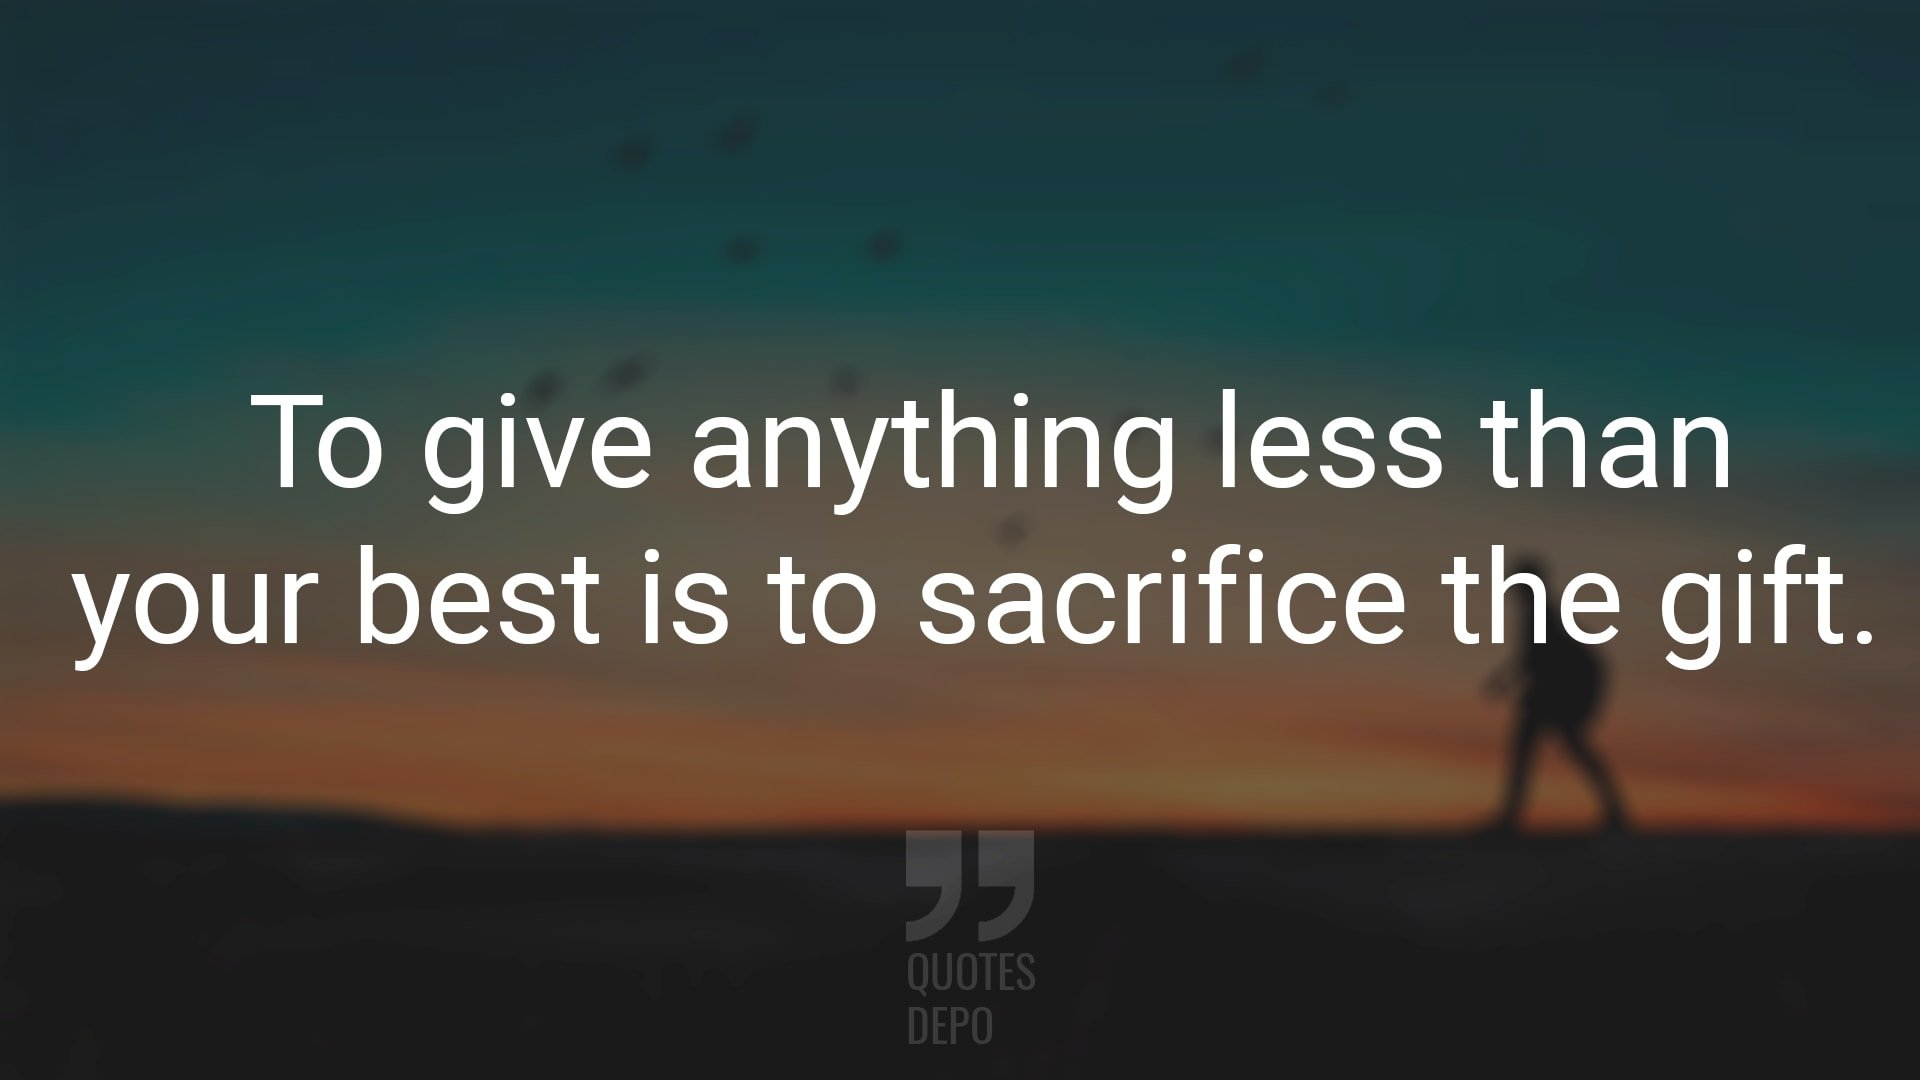 To Give Anything Less than Your Best